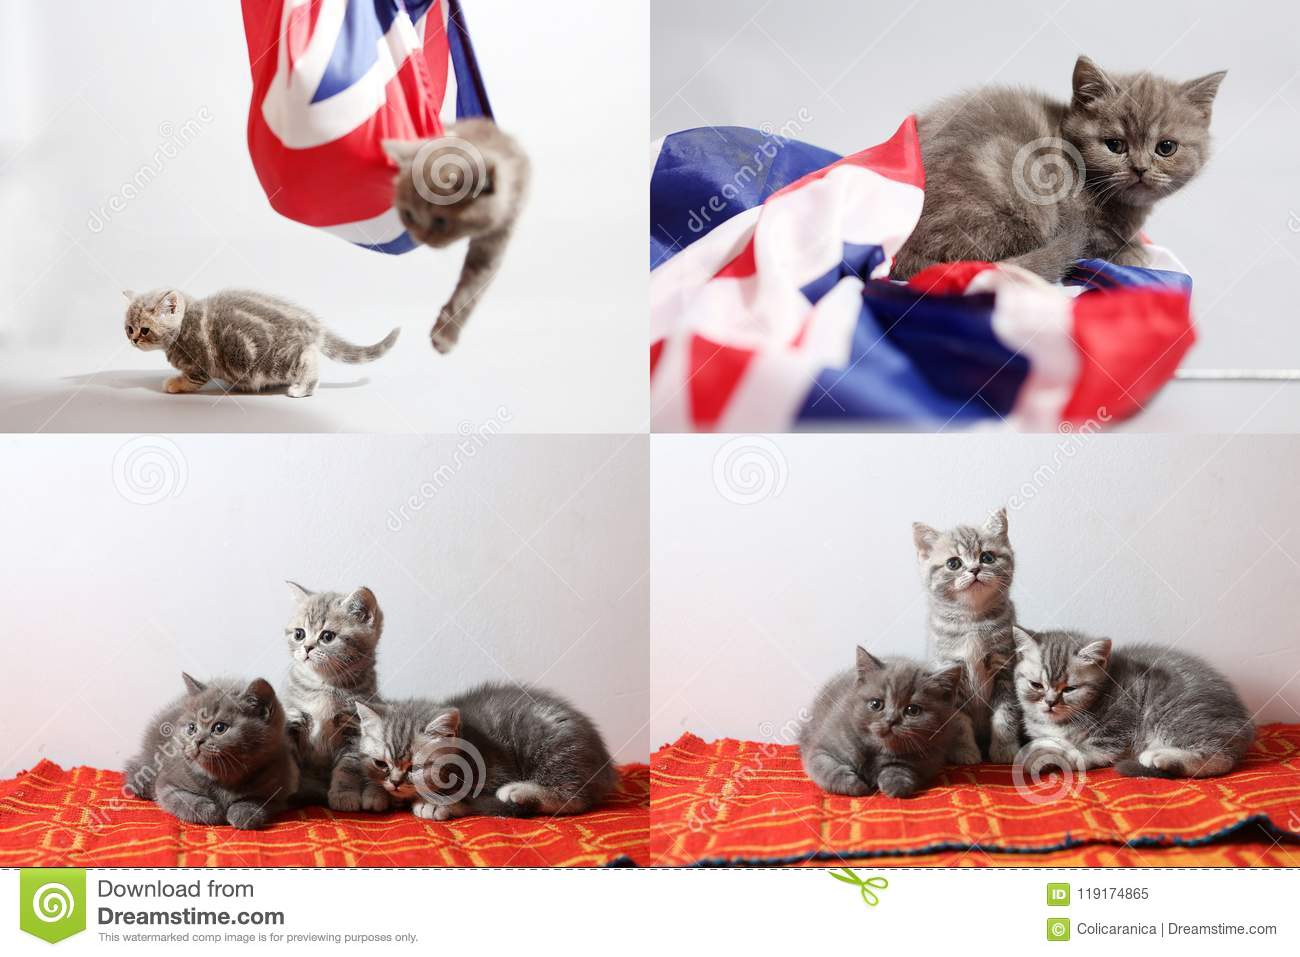 Baby kittens playing with a Great Britain flag, multicam